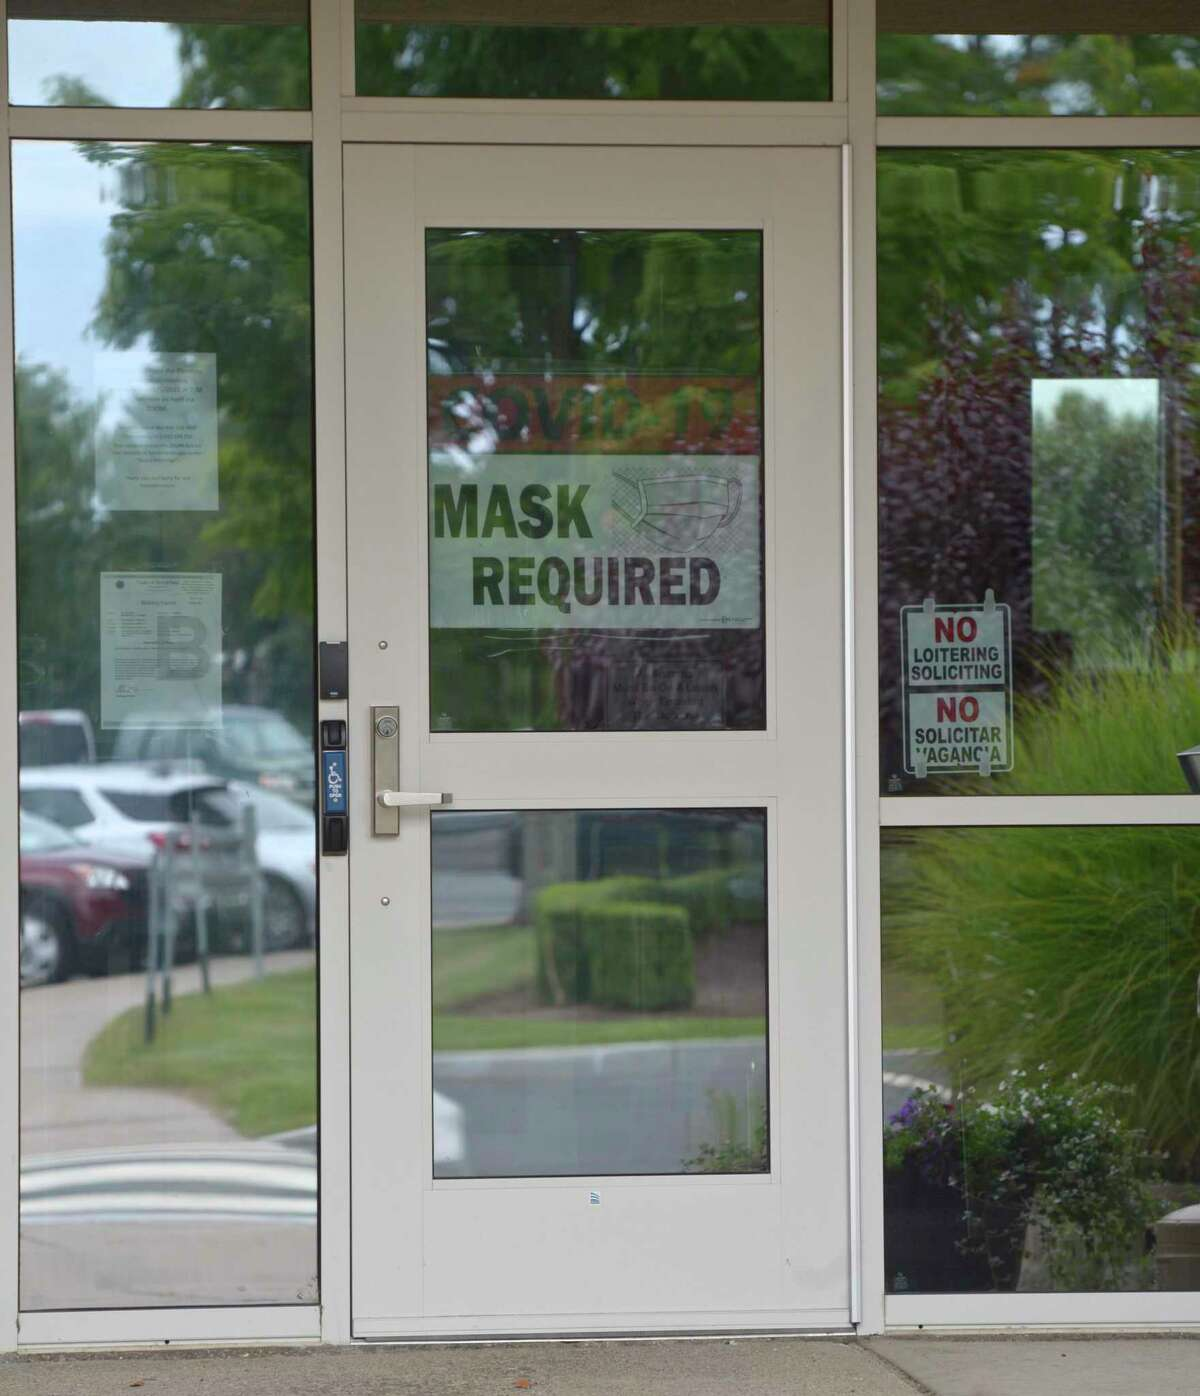 Brookfield Town Hall has returned to requiring a mask to enter. Wednesday, August 4, 2021, Brookfield, Conn.